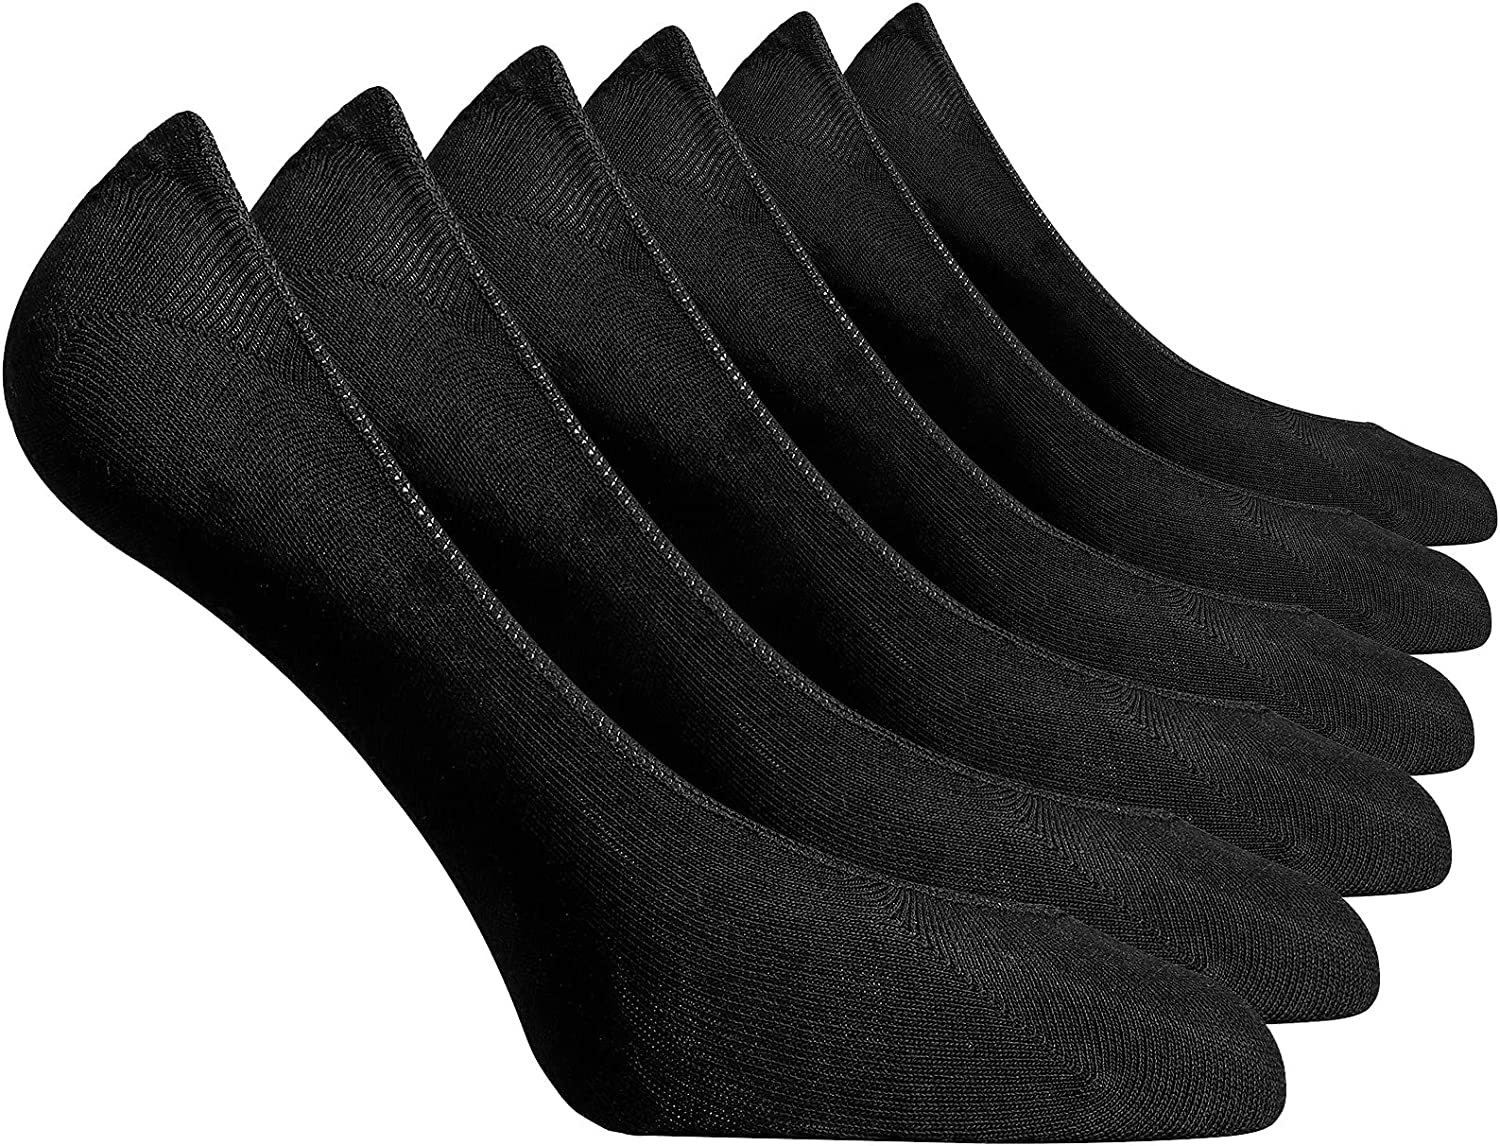 KINDFEEL Women's No Show Liner Socks Invisible Non-Slip 6 pairs